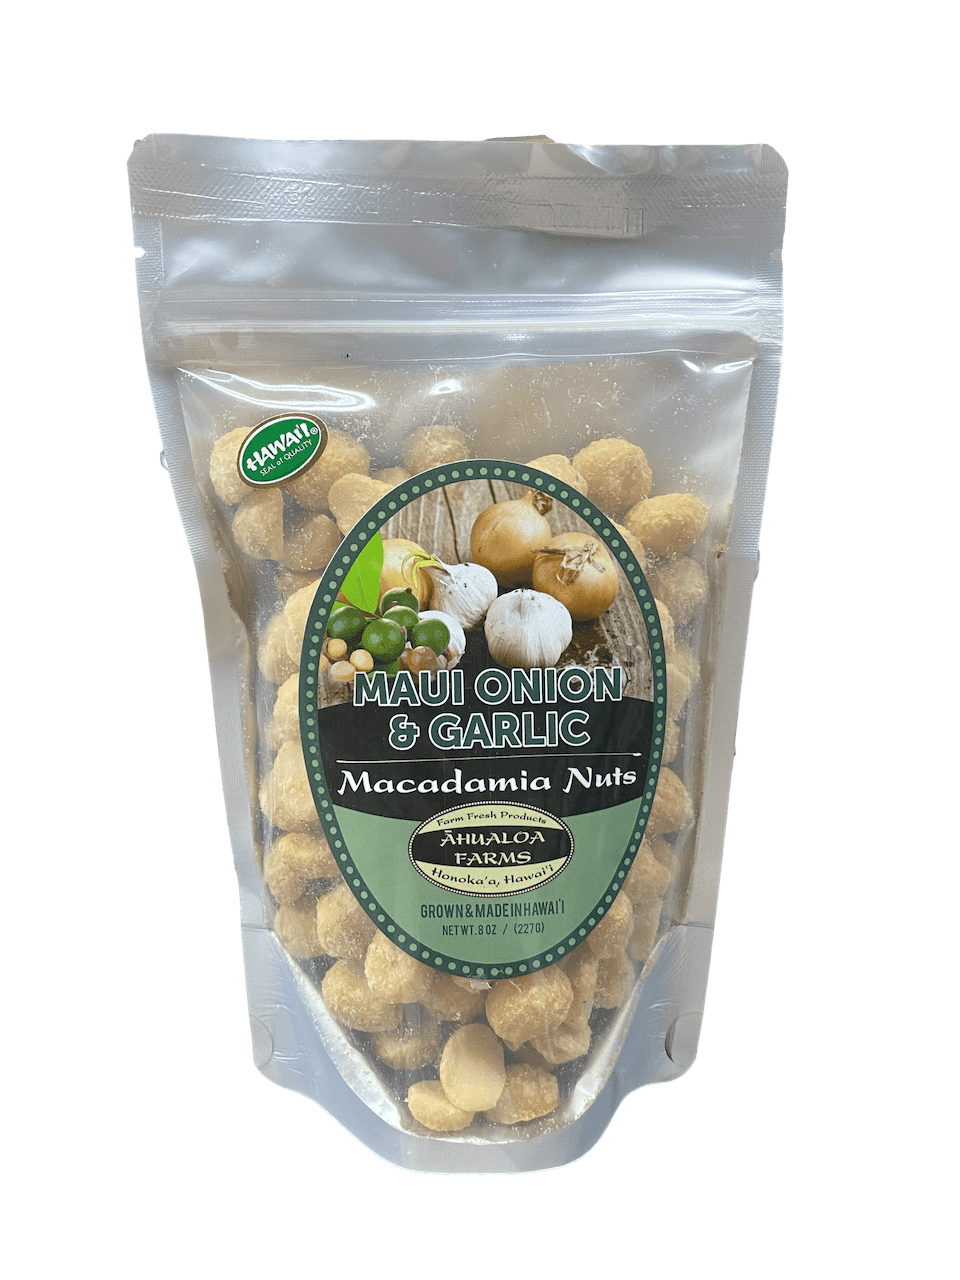 Maui Onion & Garlic Macadamia Nuts - Hawaiian Farmers Market